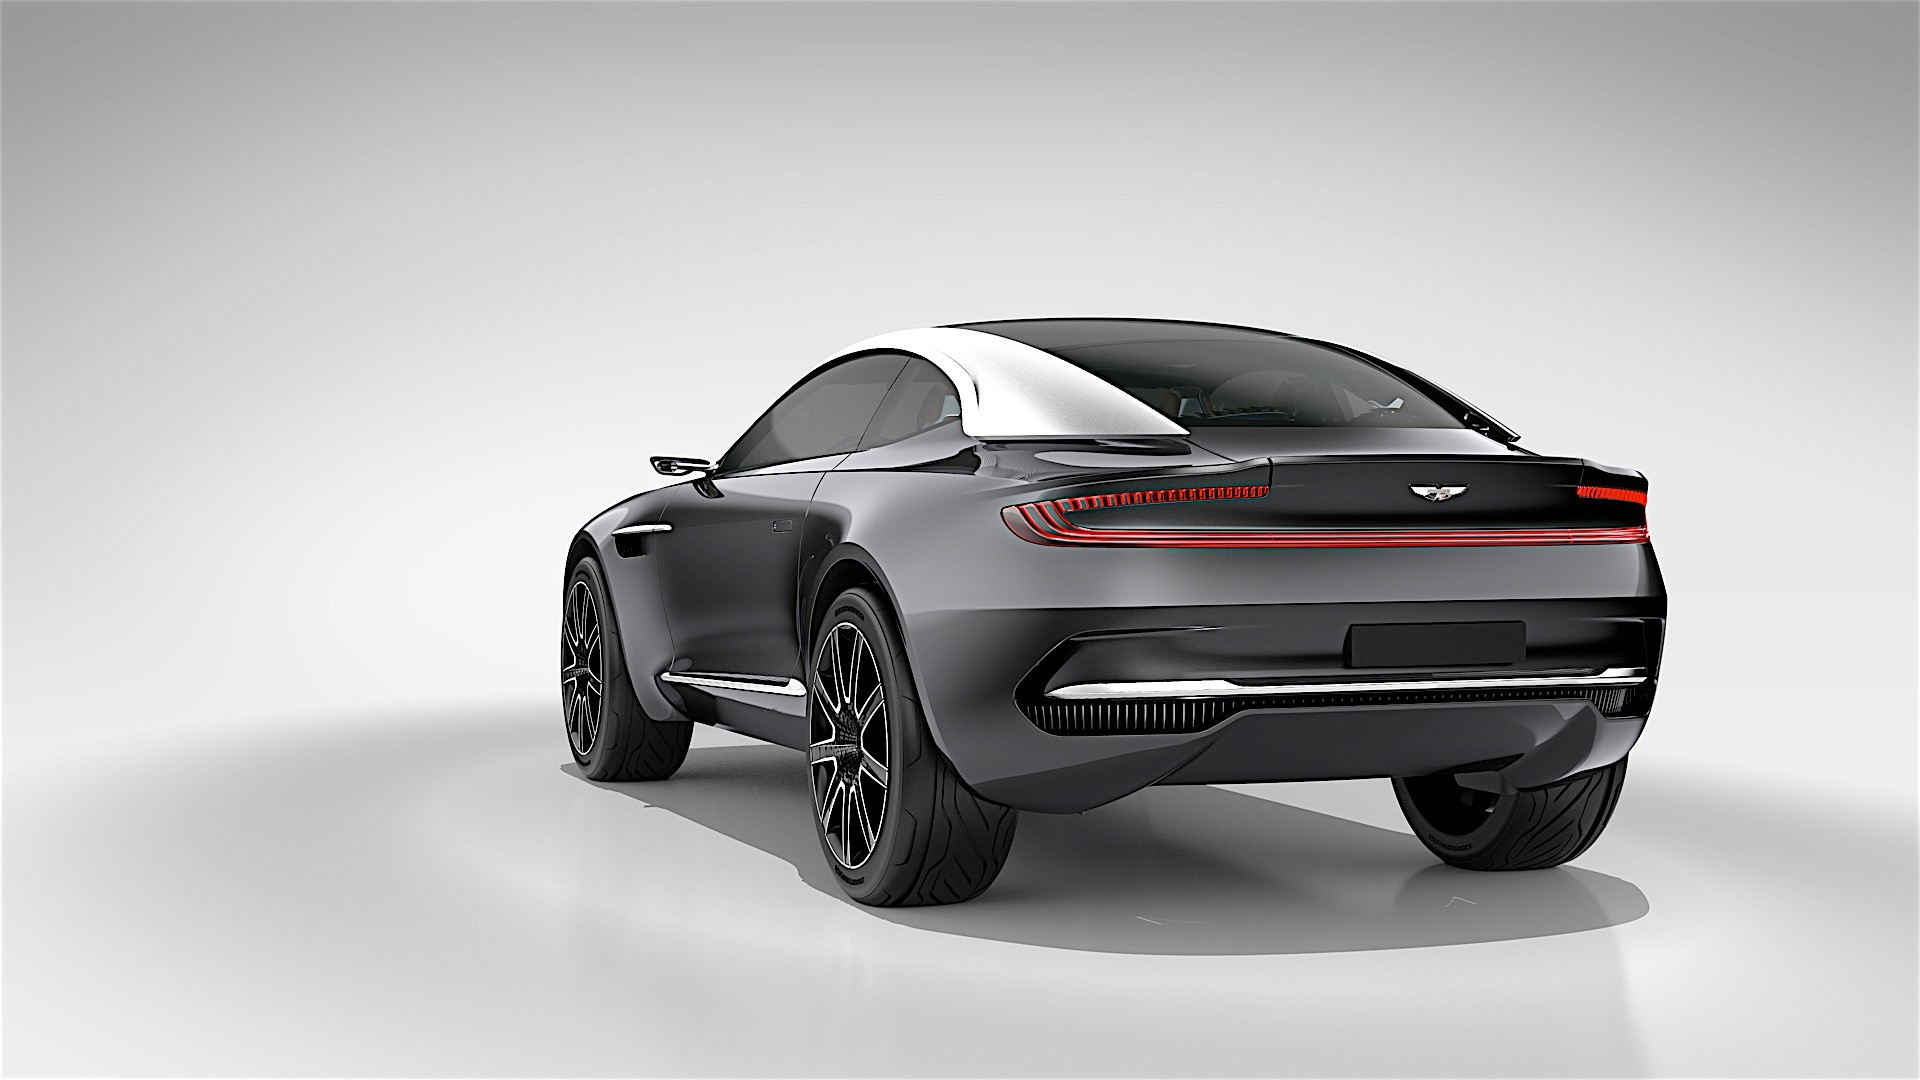 Aston Martin Lineup To Be Electrified By Mids Autoevolution - Aston martin lineup